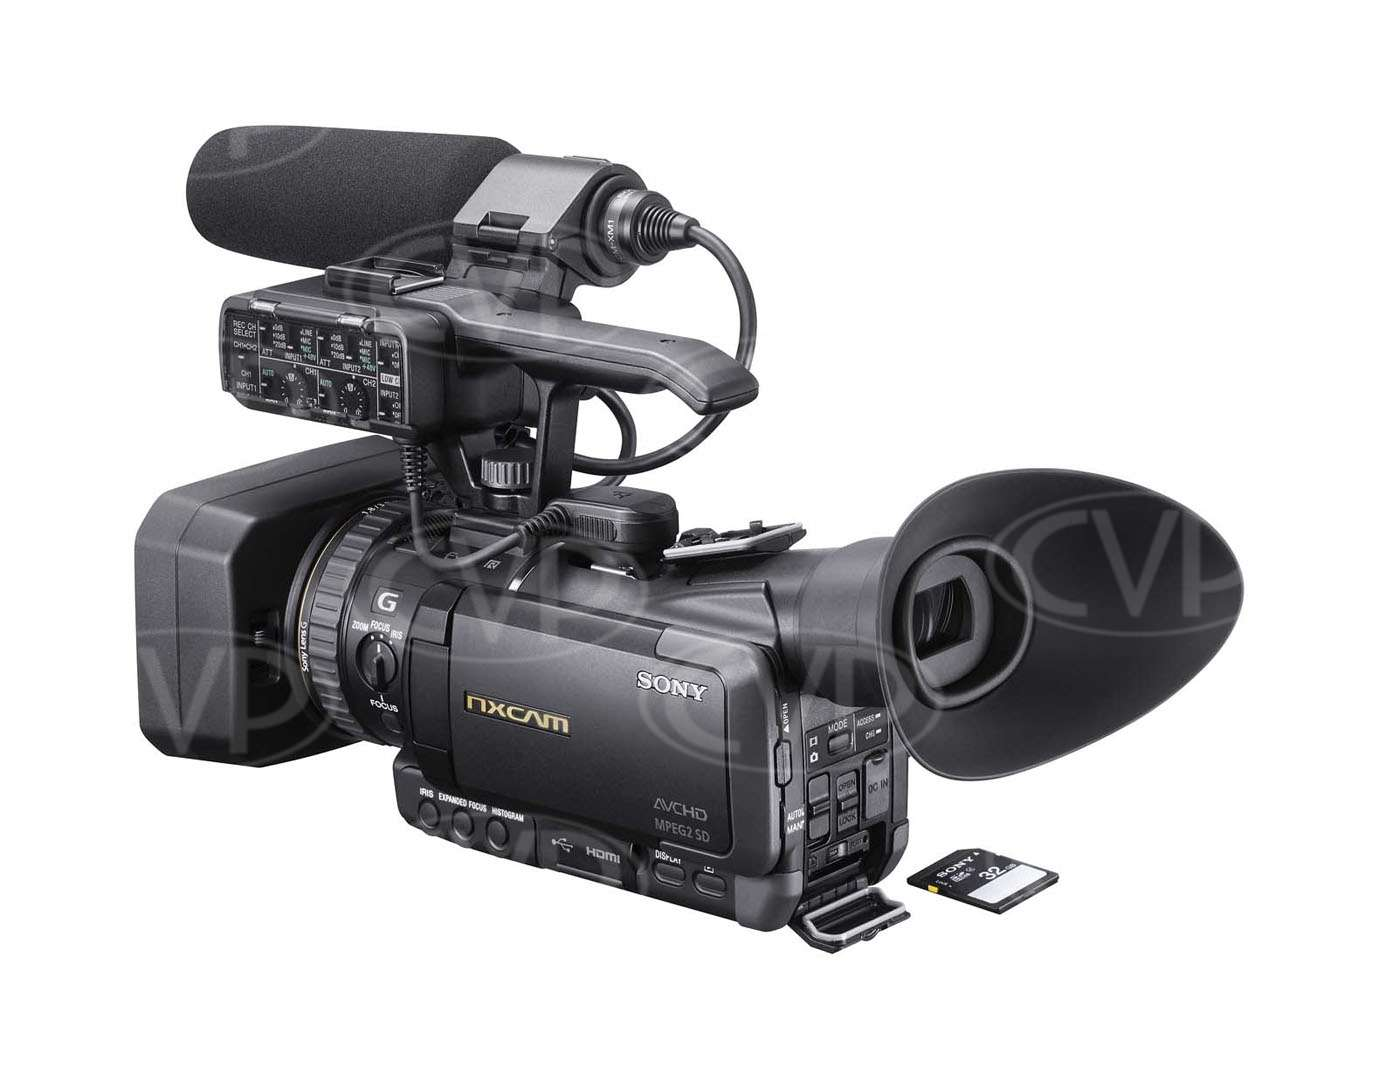 Sony HXR-NX70E (HXRNX70E) compact rain and dust proof Full HD